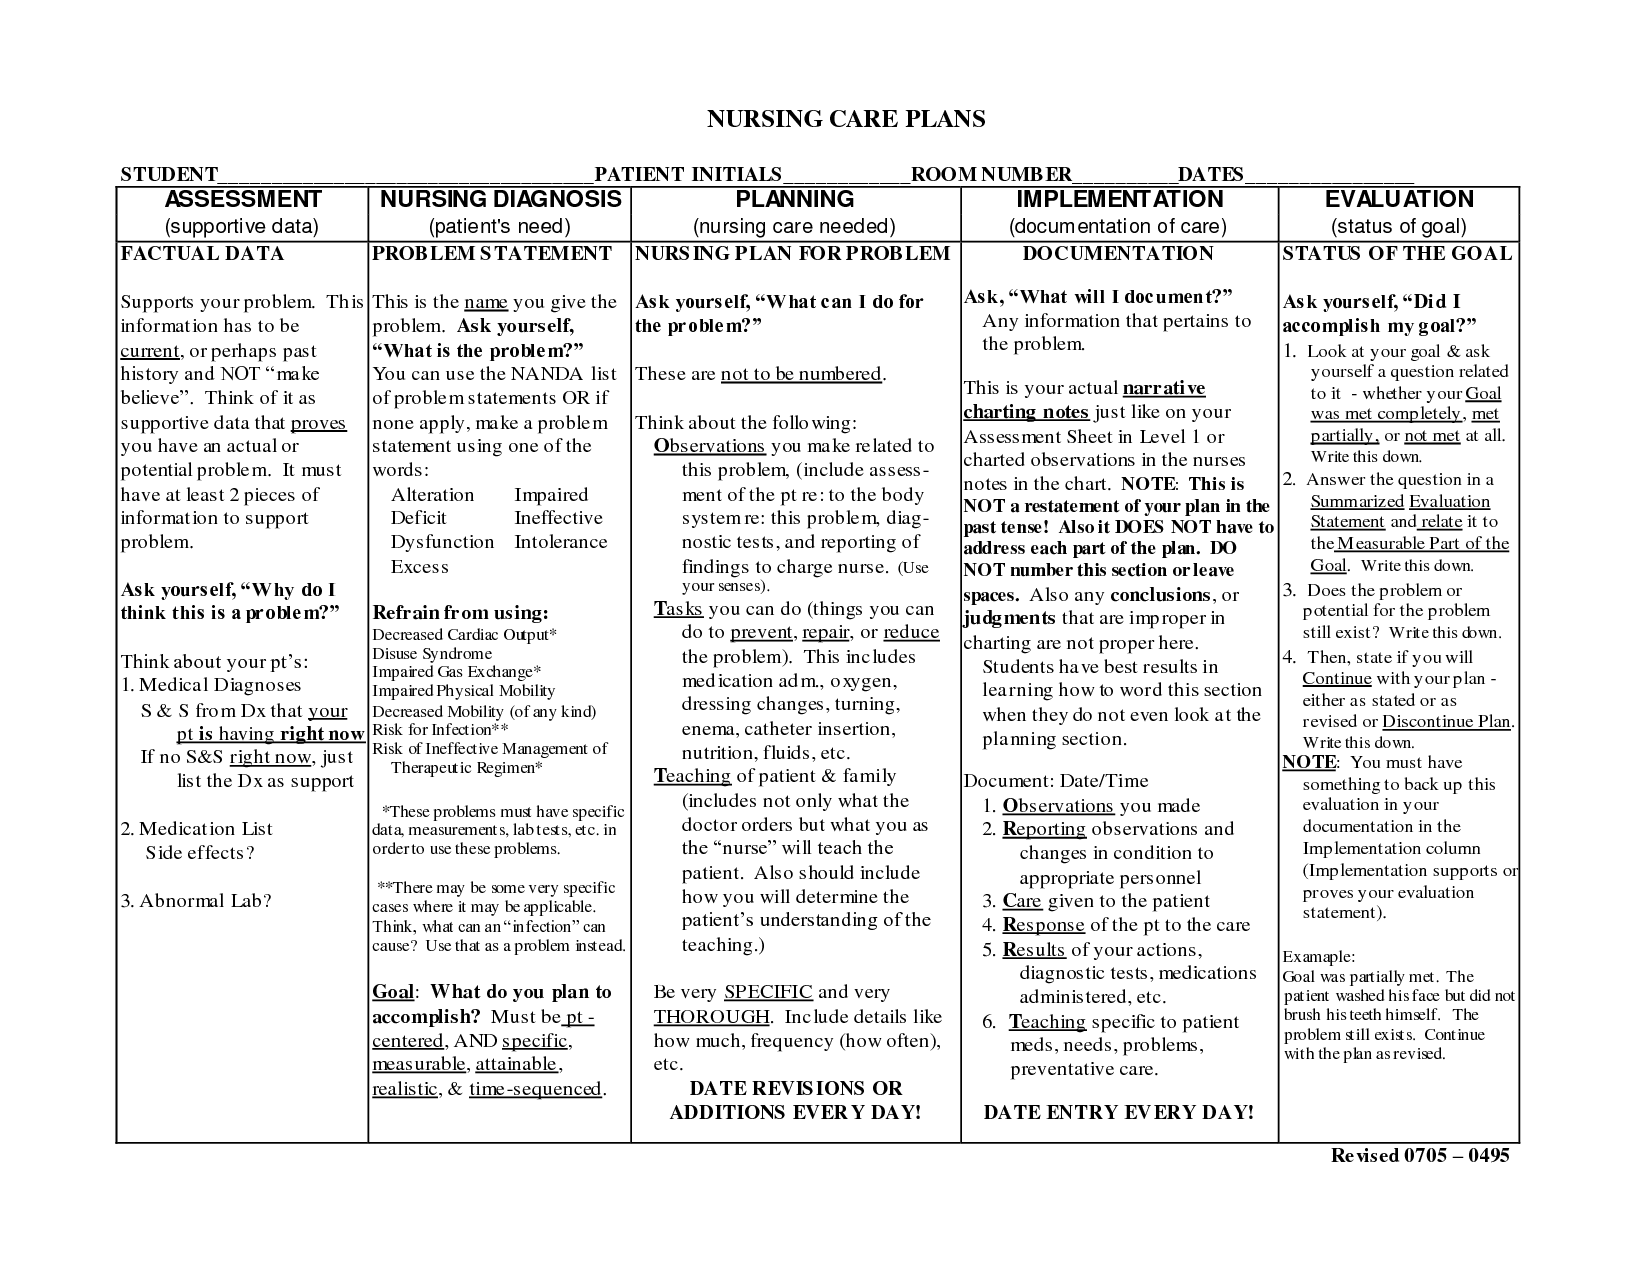 Nursing notes nursing care plans download as doc doc for Nursing teaching plan template